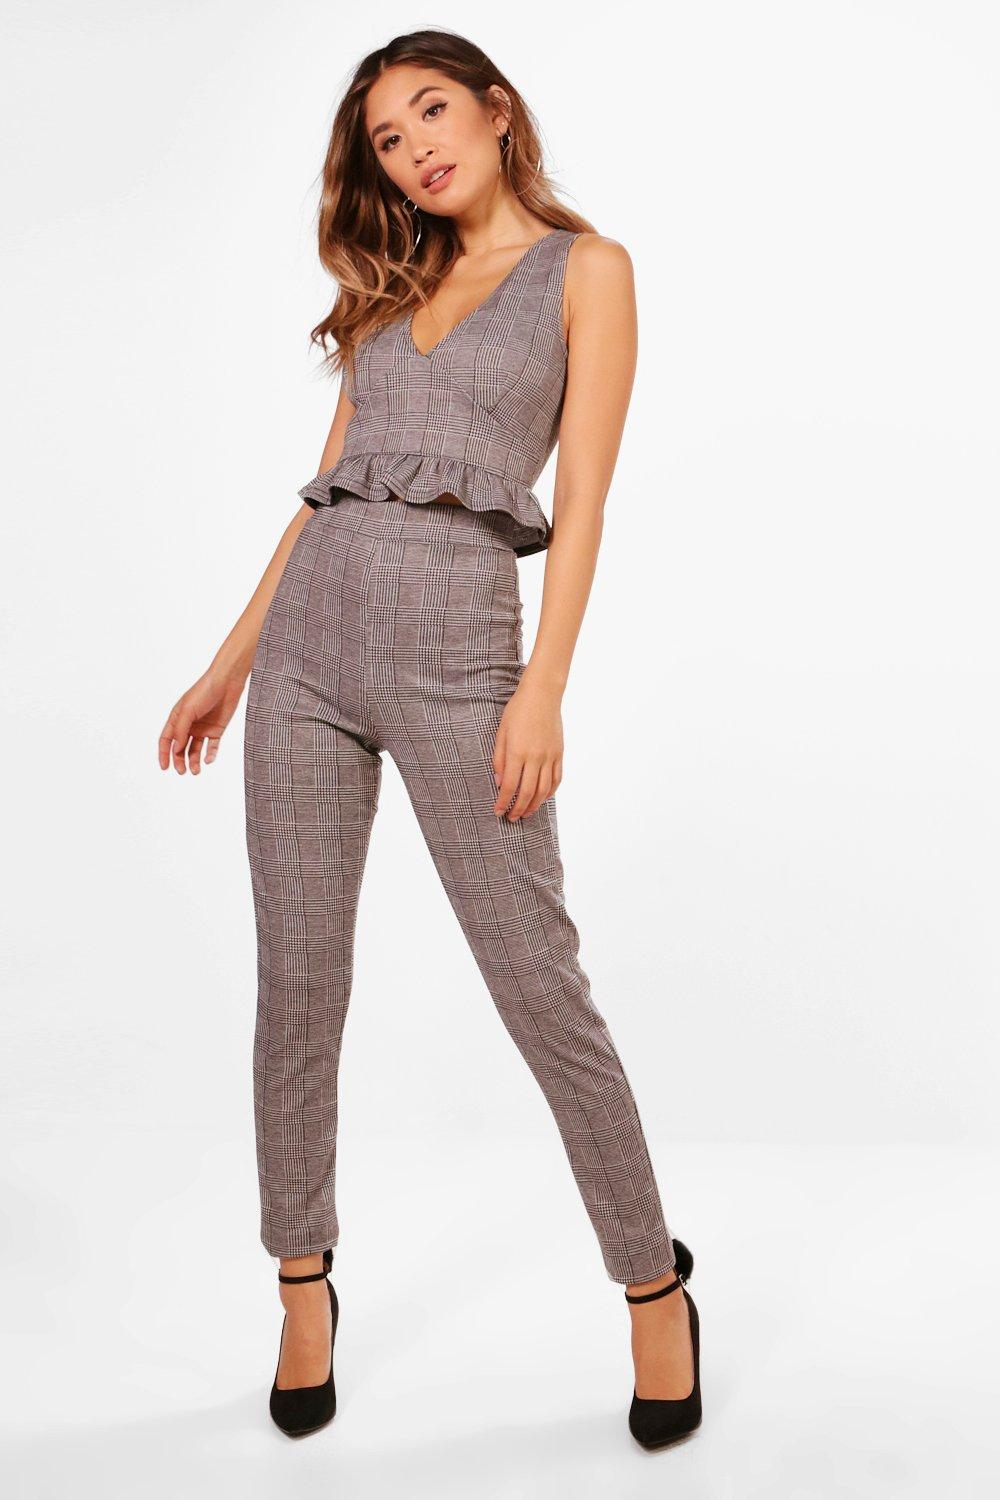 Set and Plunge Crop Trouser grey Skinny Check vSqXwAA